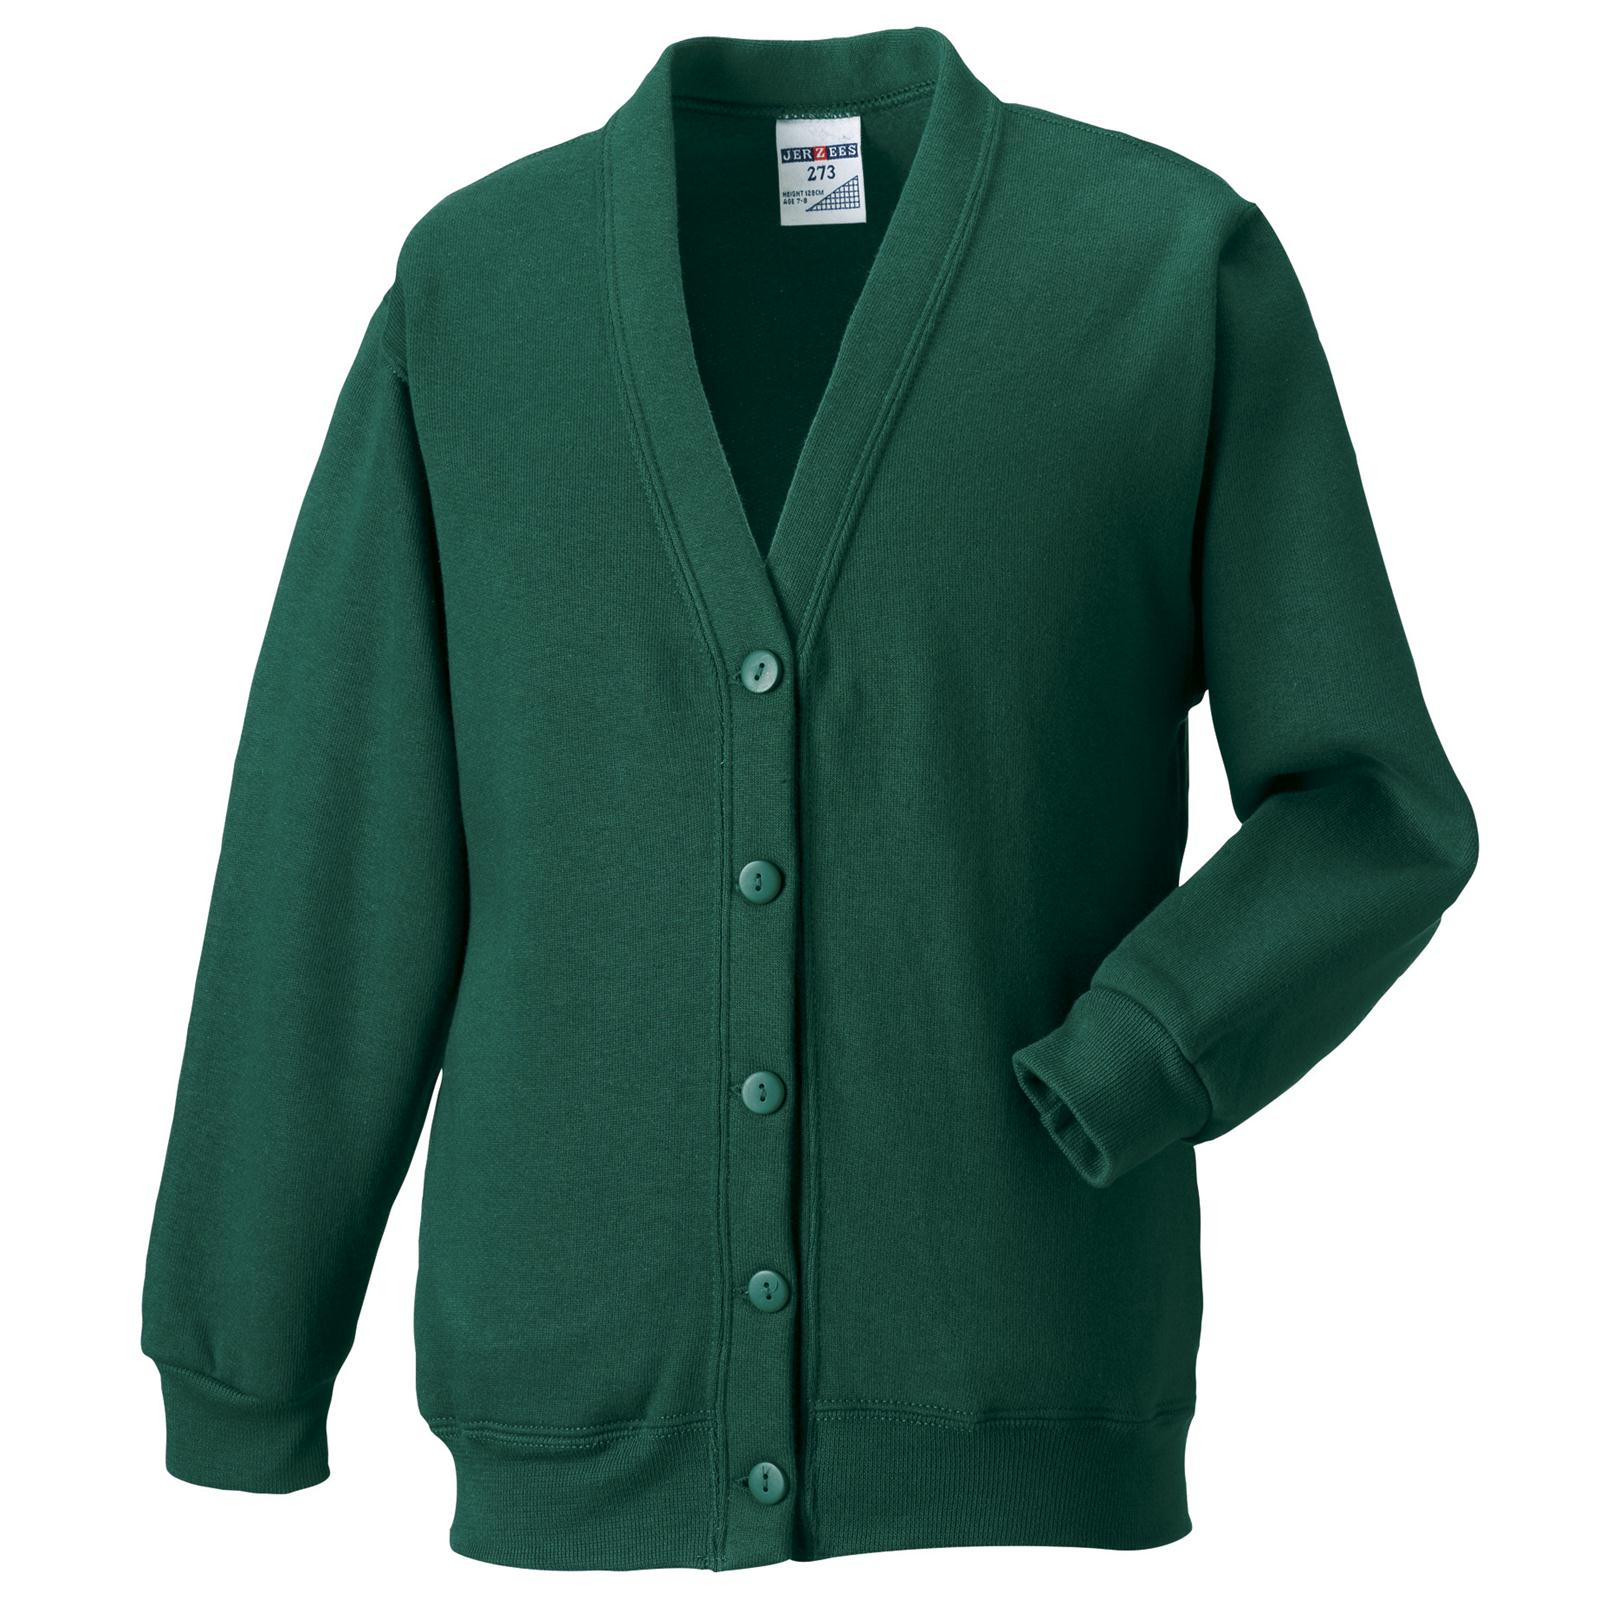 Covert Cardigan A performance fleece jacket with a heathered, casual style, the Covert Cardigan is the go to piece for daily adventure. Alpine inspired and highly functional, the jacket has clean lines and a .